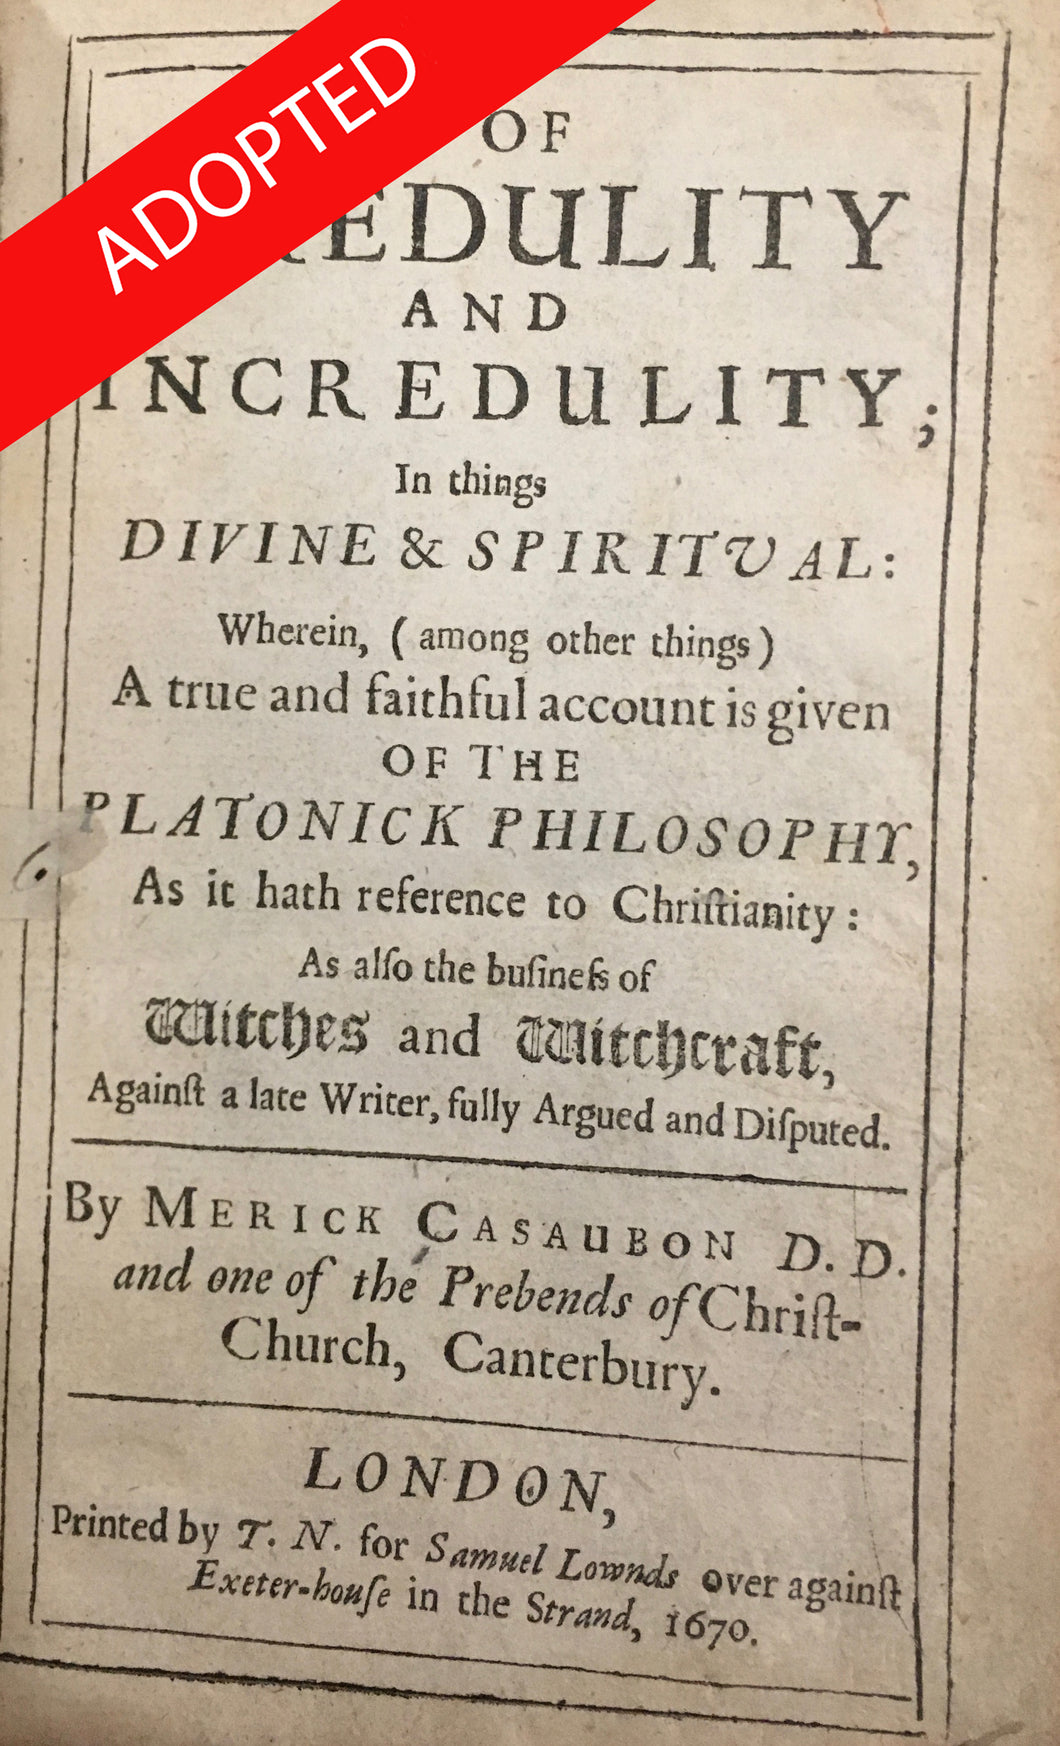 Of credulity and incredulity; in things divine & spiritual: wherein, (among other things) a true and faithful account is given of the Platonick philosophy, as it hath reference to Christianity: as also the business of witches and witchcraft..